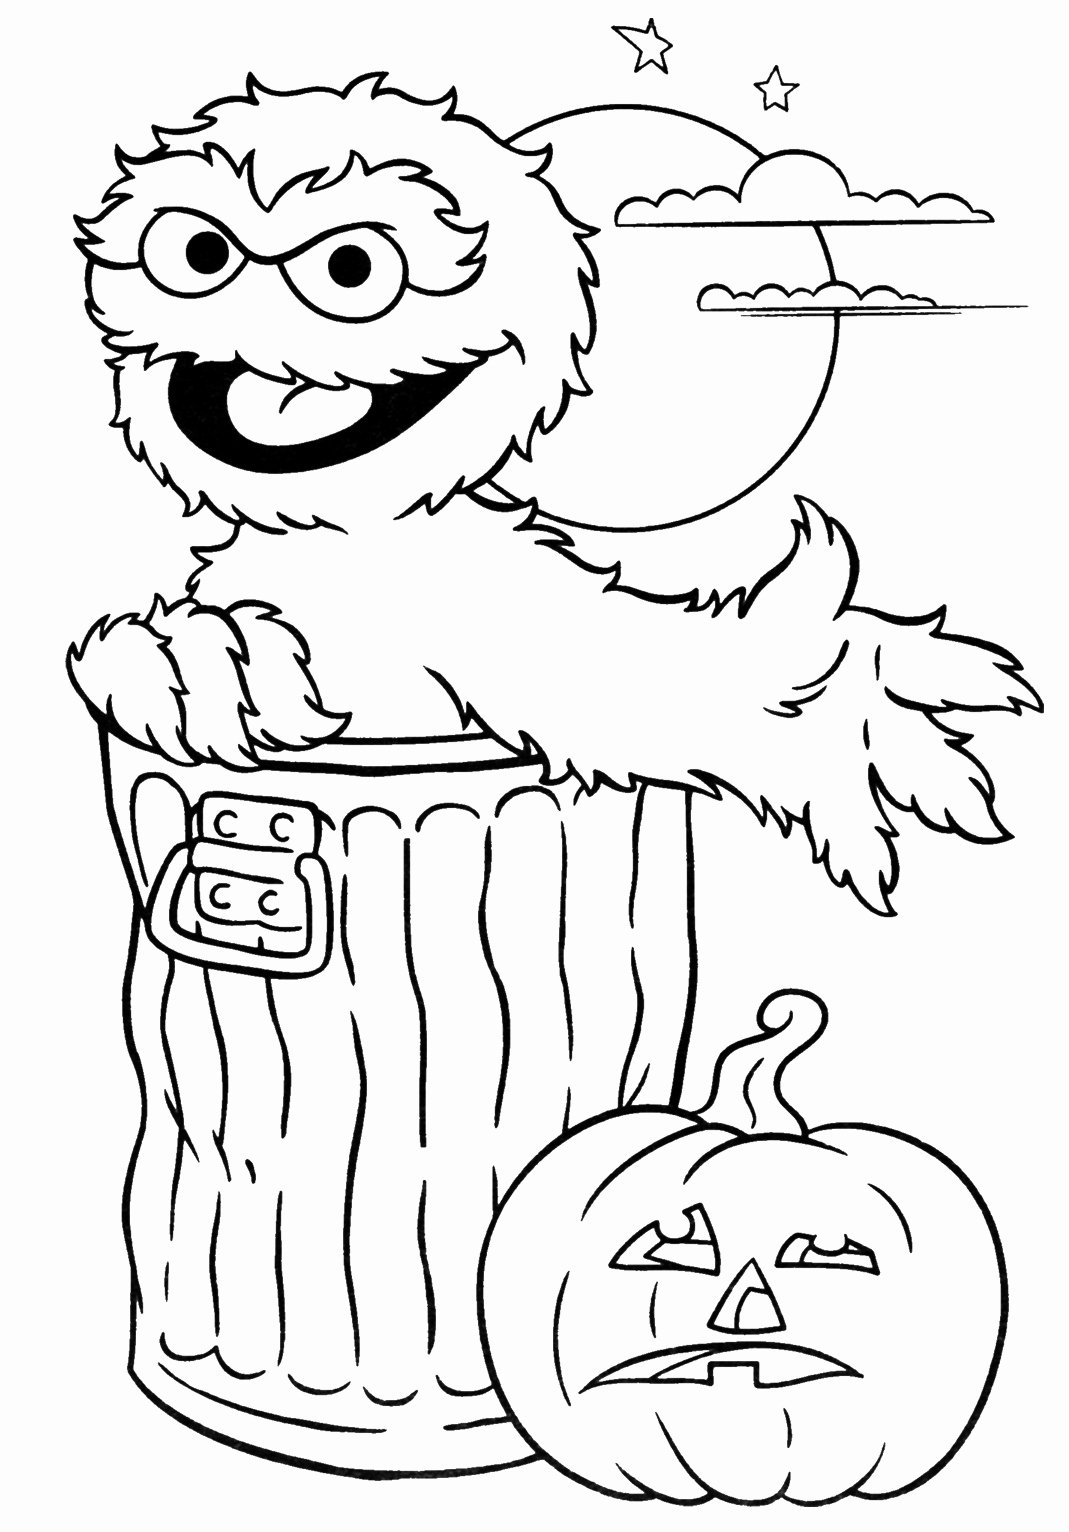 Free Printable Halloween Pictures Best Of Halloween Printable Coloring Pages Minnesota Miranda